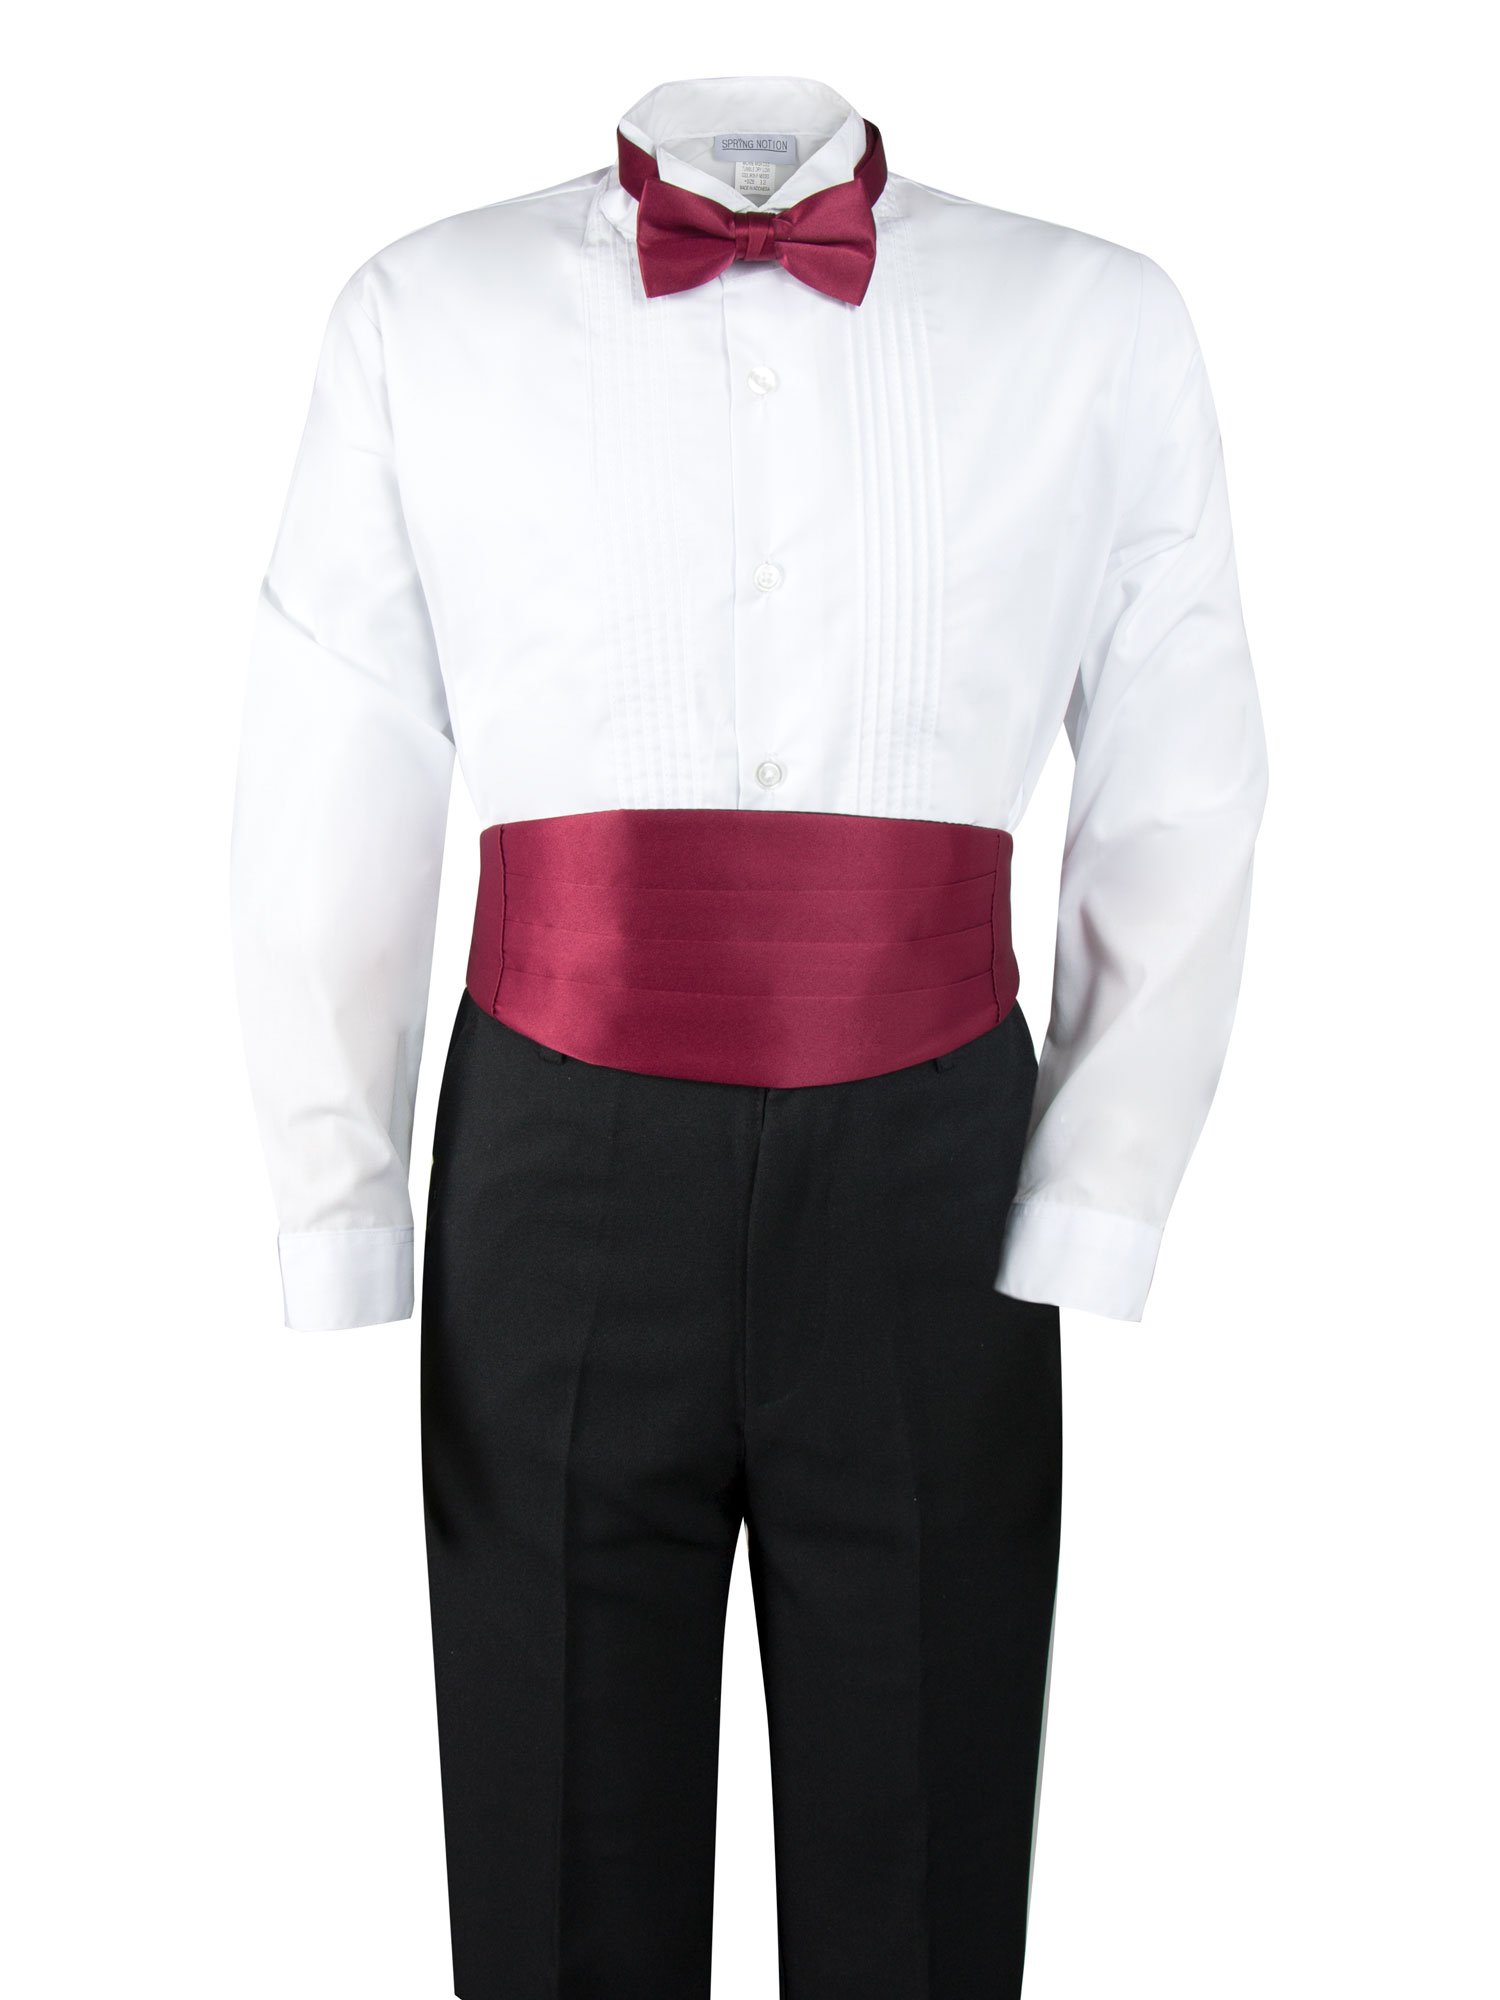 Spring Notion Boys' Black Classic Tuxedo with Tail Burgundy 4T by Spring Notion (Image #3)